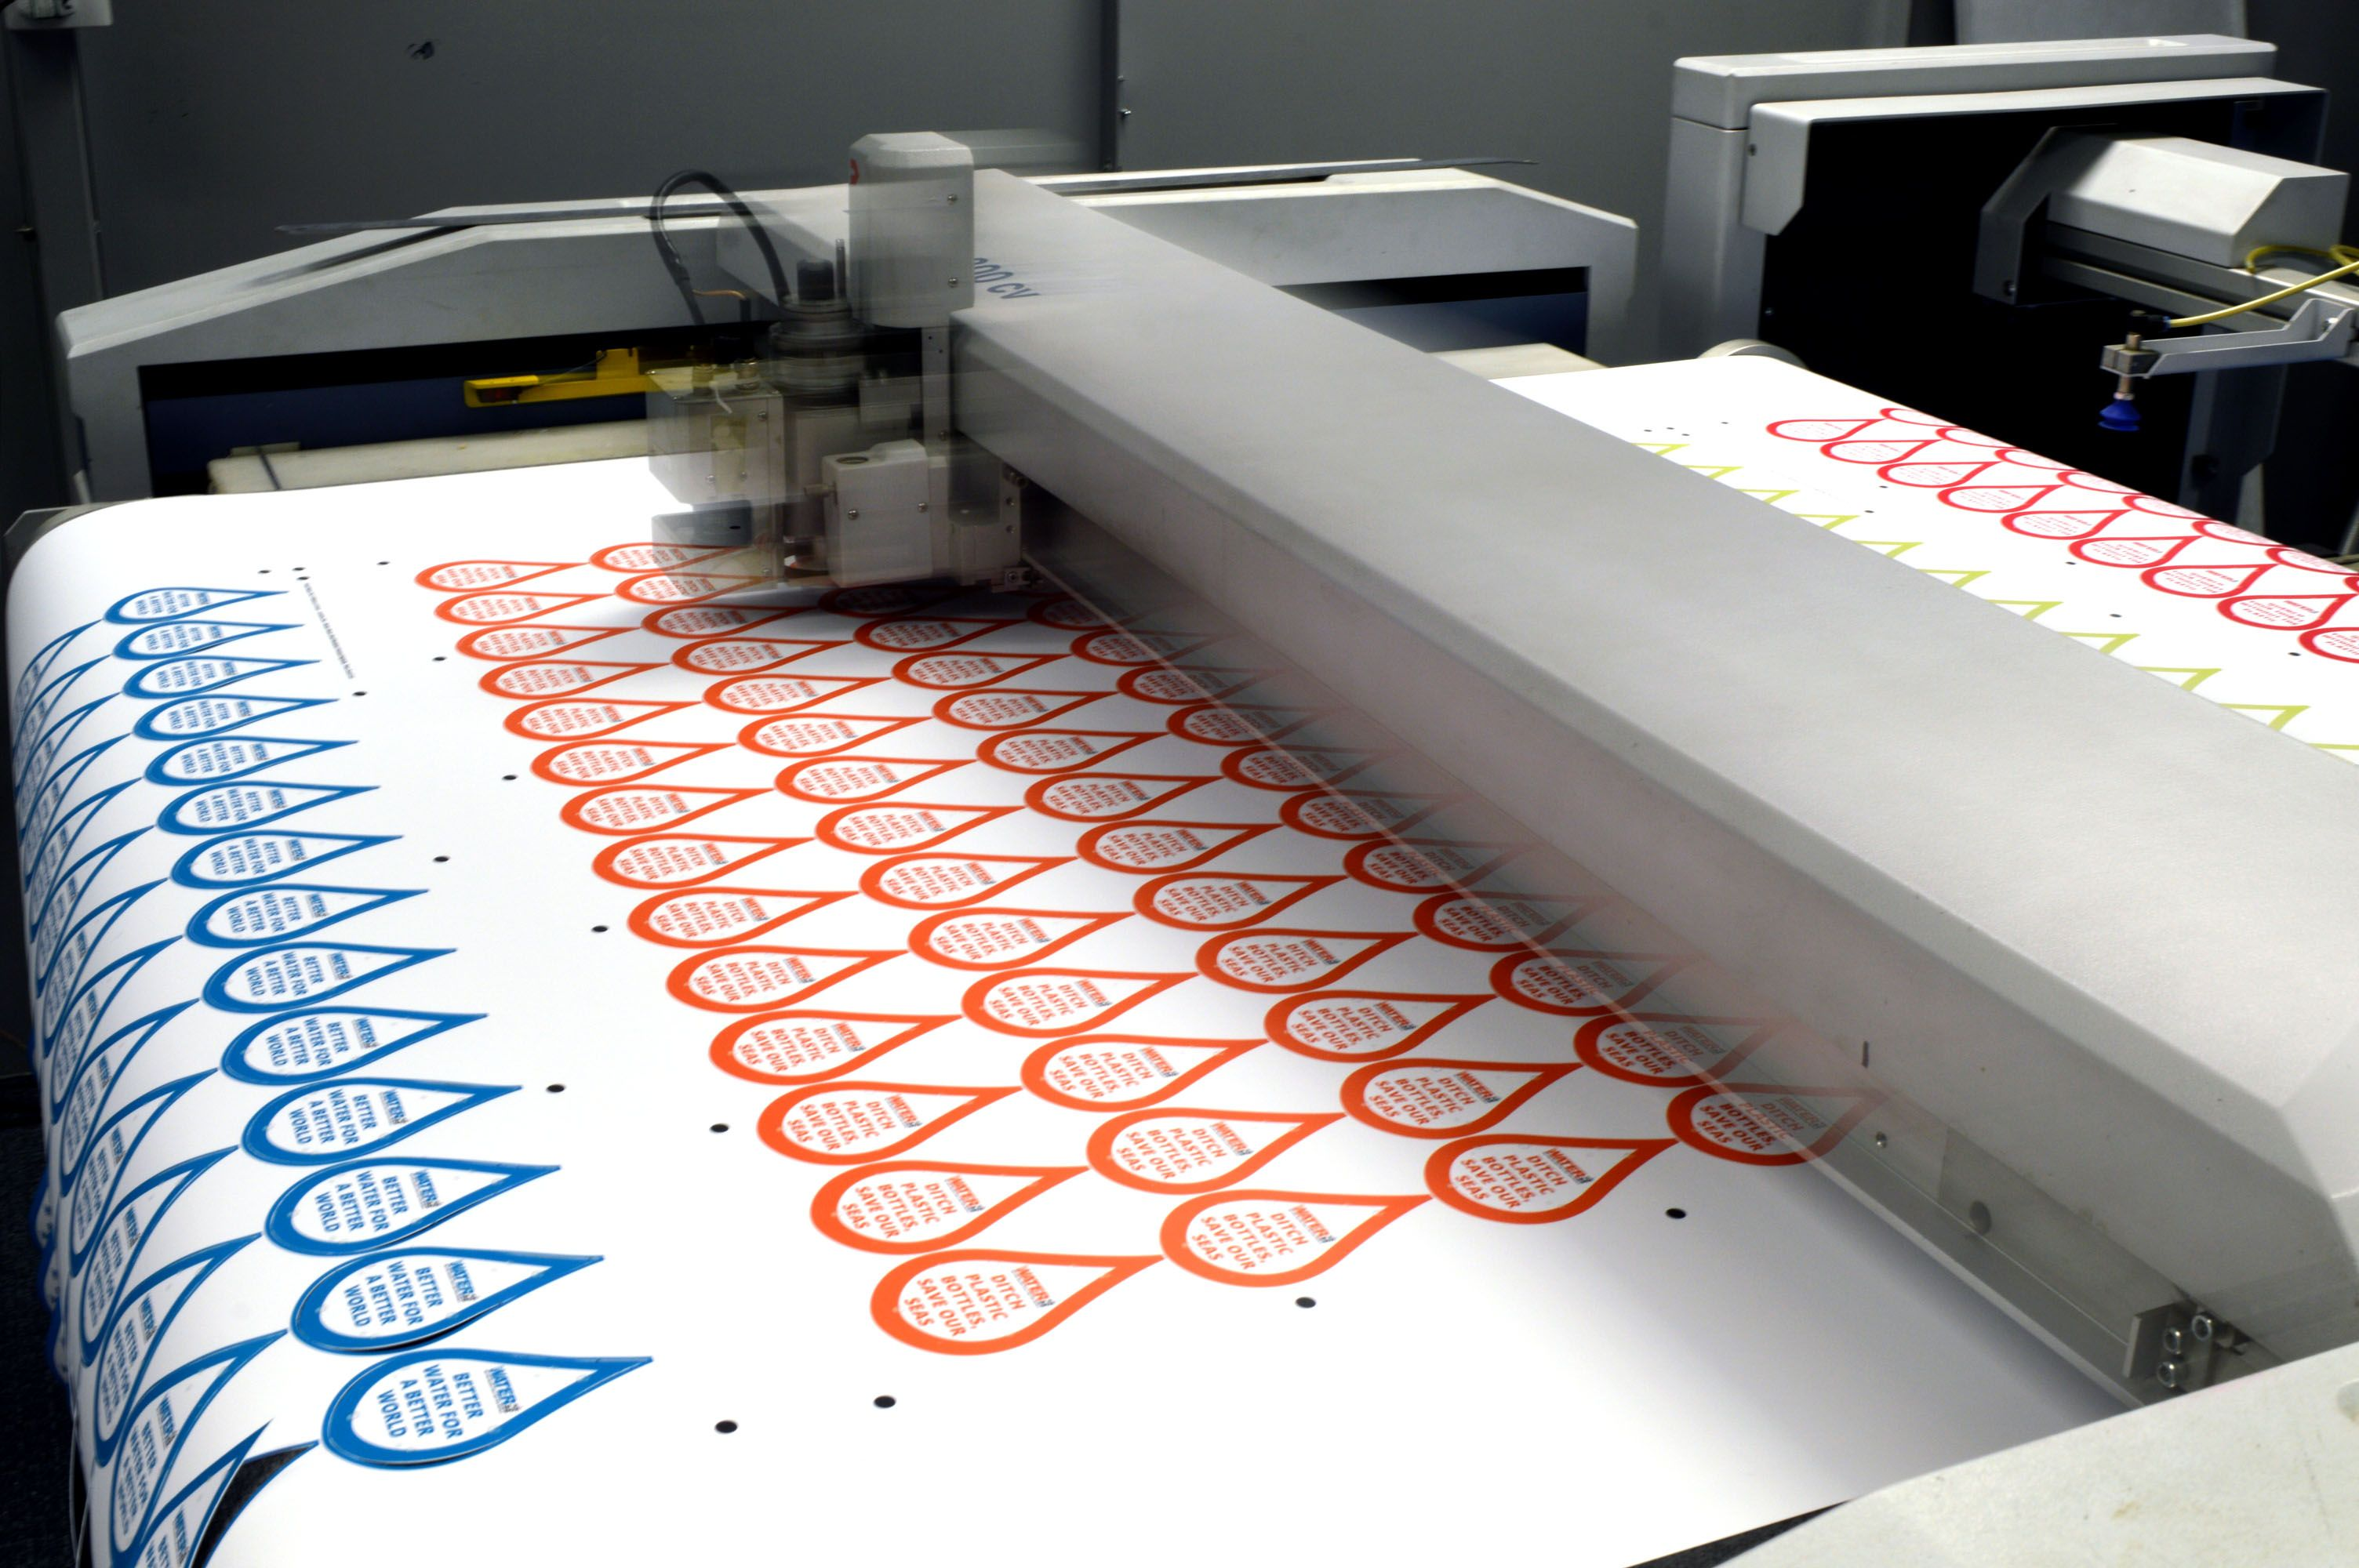 Custom_stickers_being_printed_on_a_flatbed_cutter.jpg